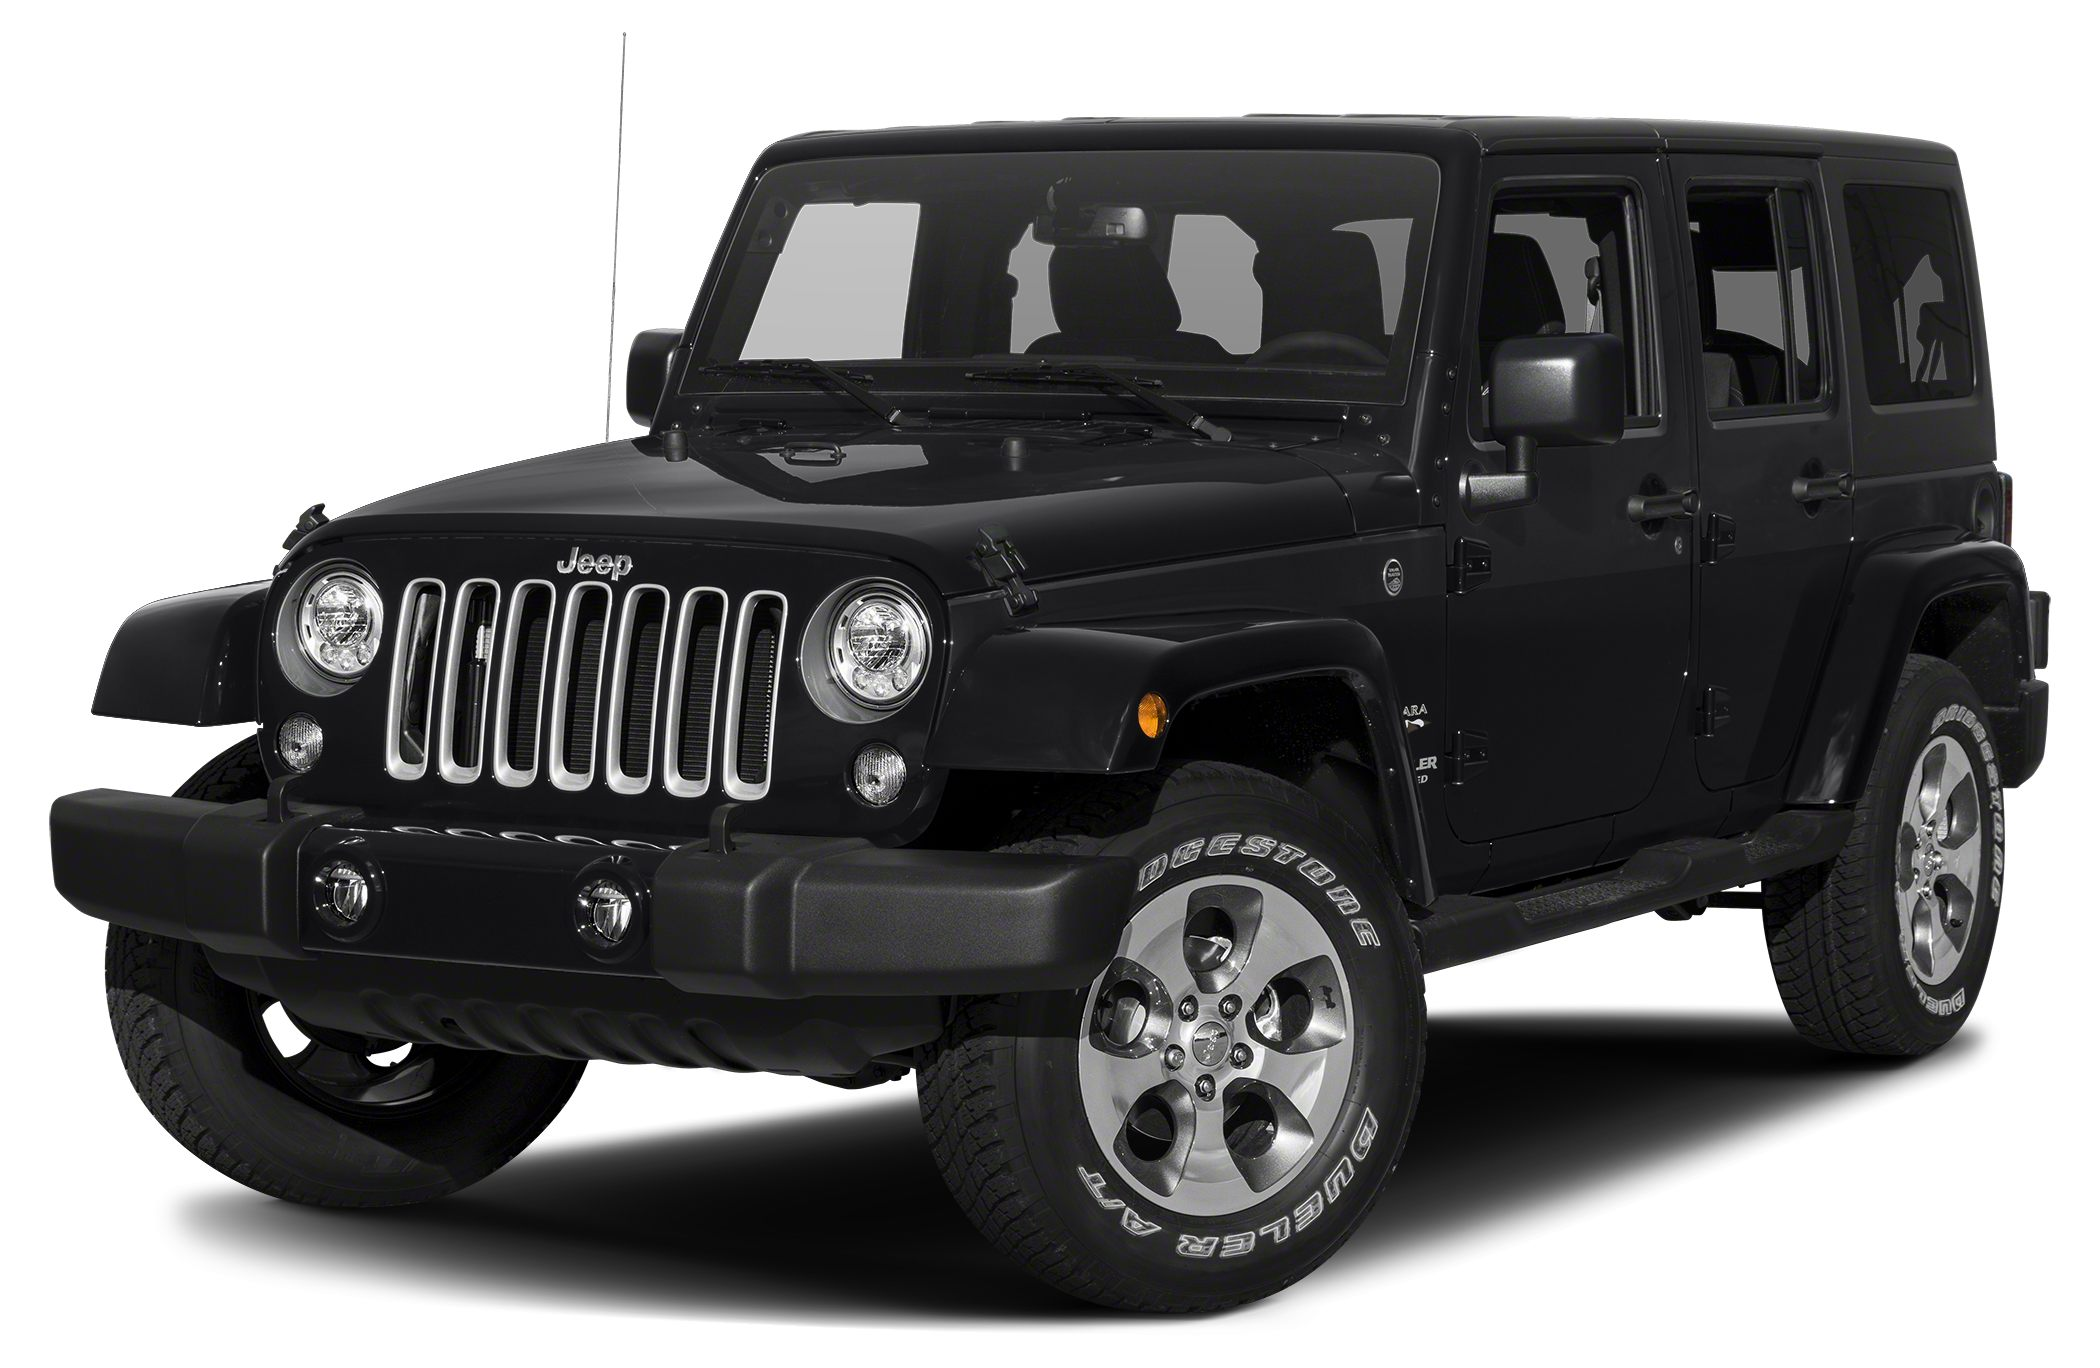 2017 Jeep Wrangler Unlimited Sahara 2017 Jeep Wrangler Unlimited Sahara in Black Clearcoat vehicle